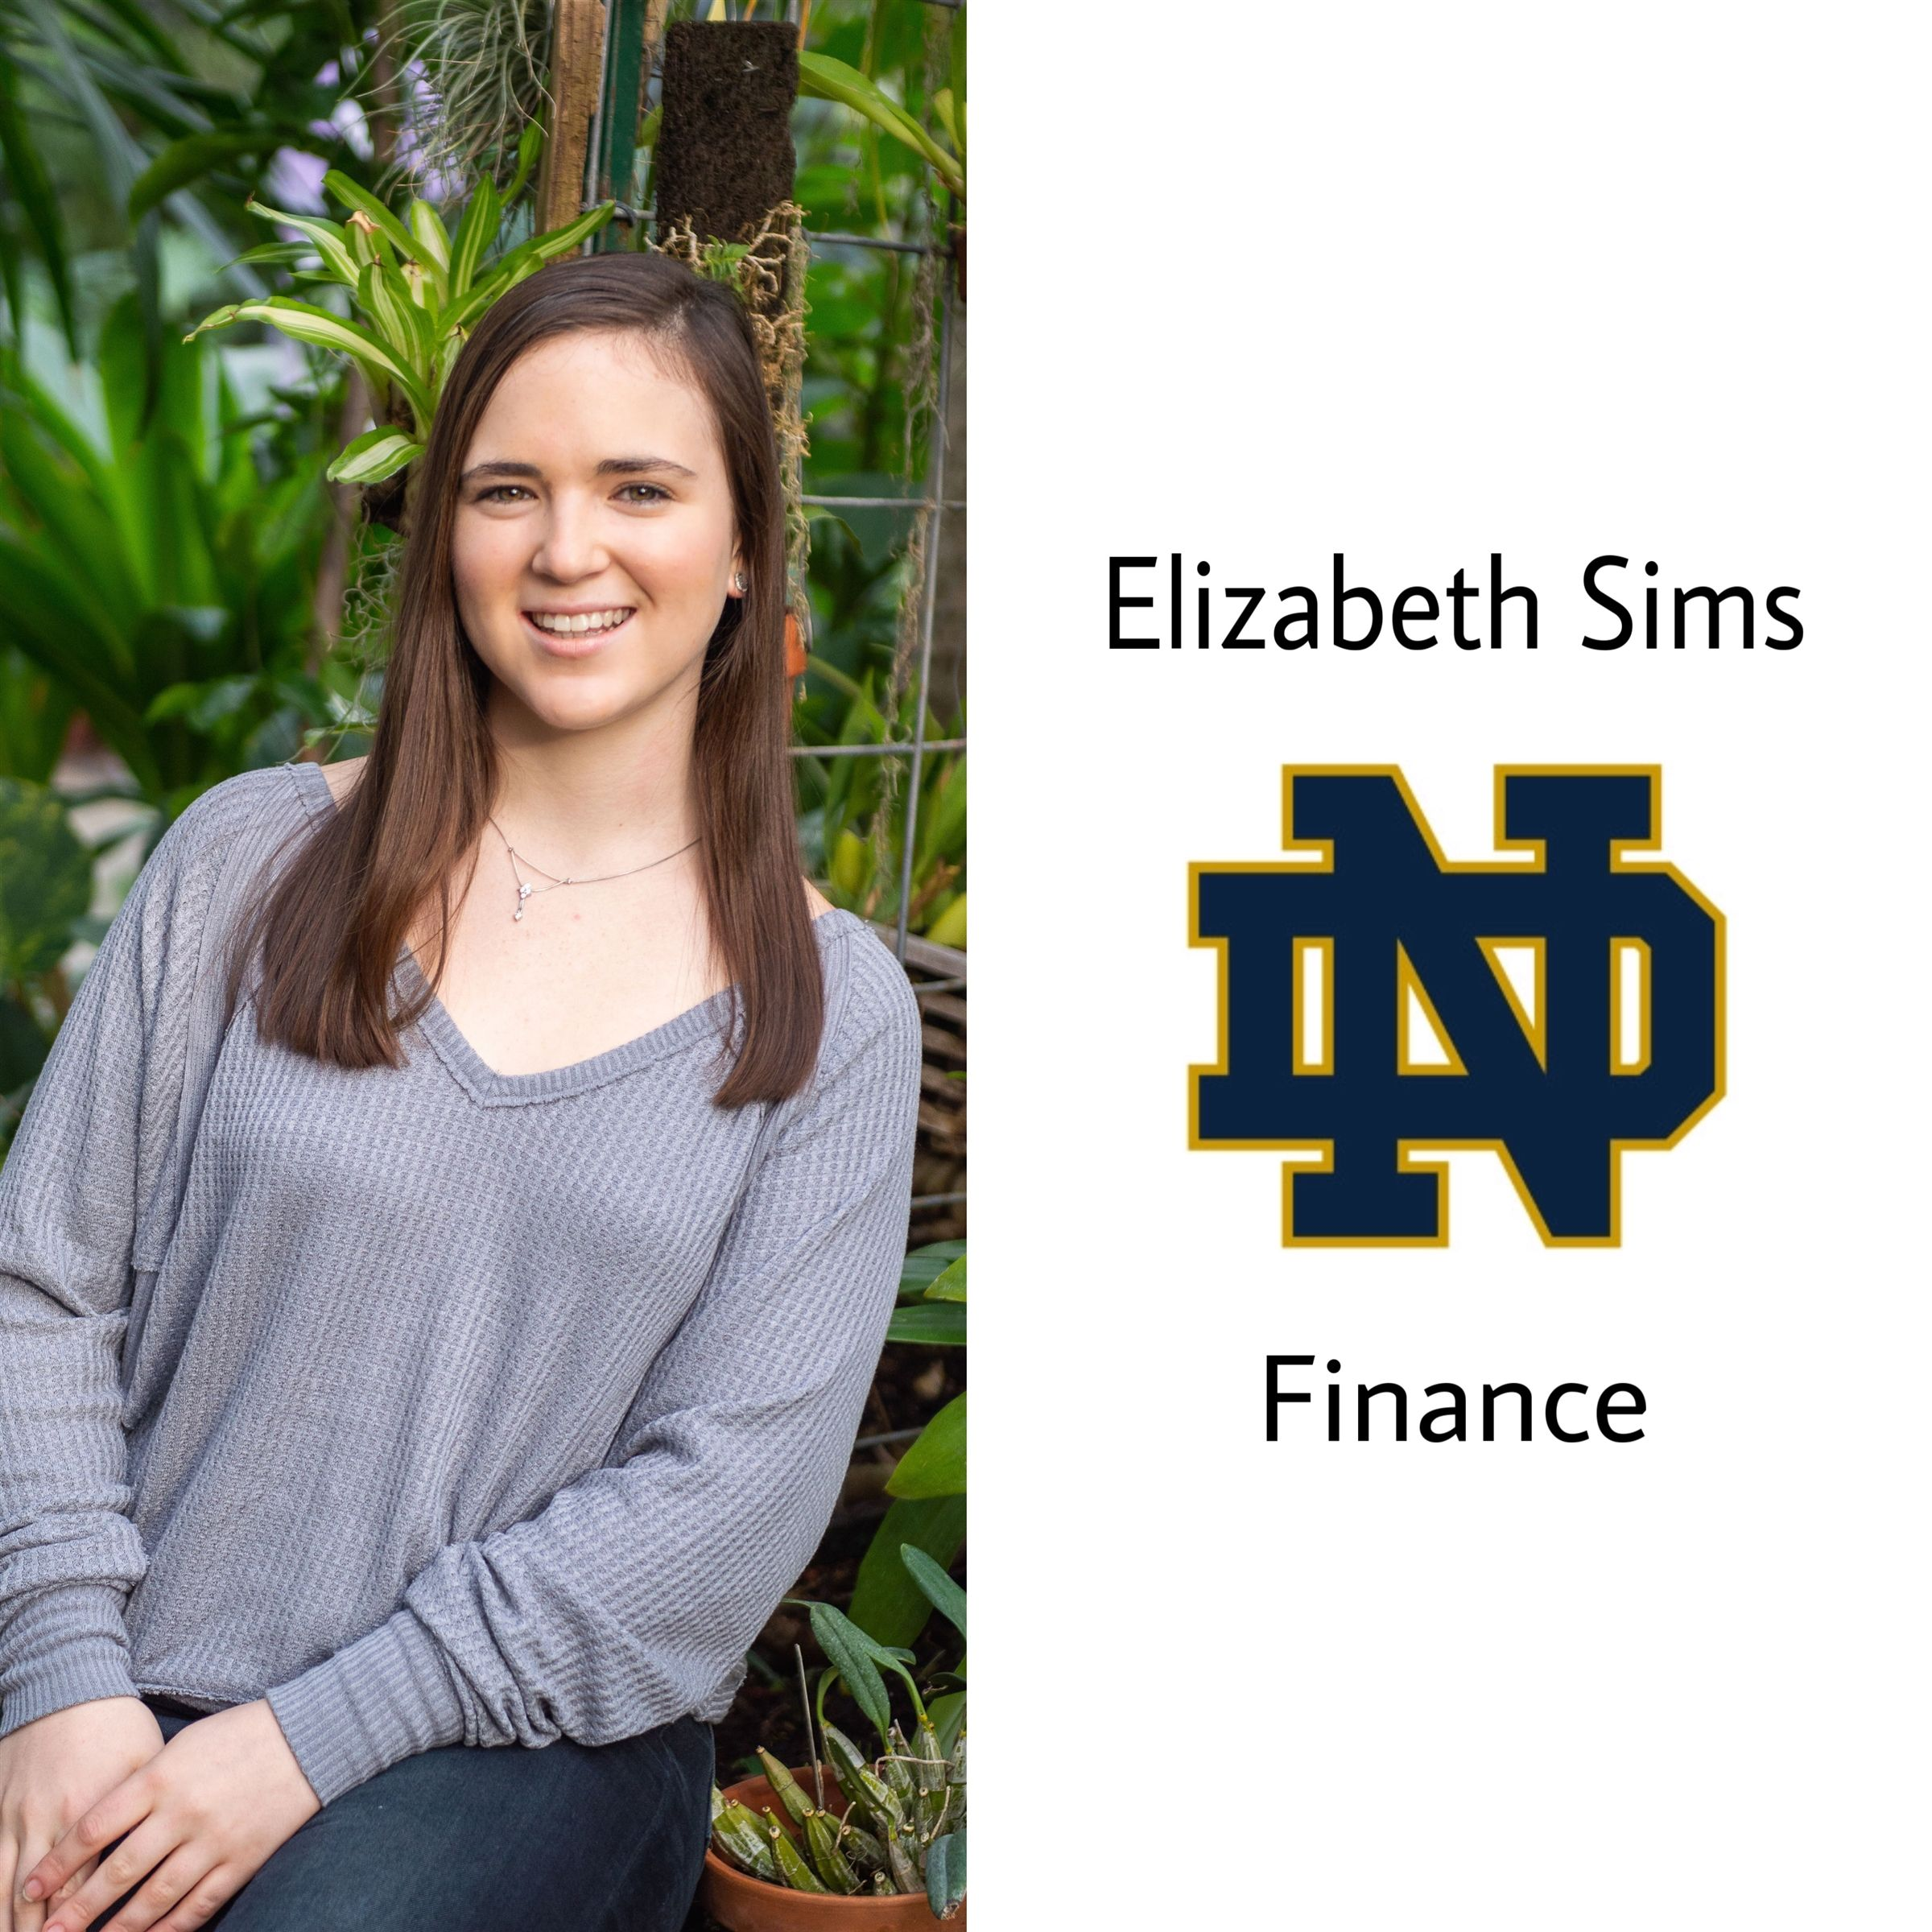 Congrats Elizabeth!! She will be attending University of Notre Dame in the fall majoring in finance. Go Irish!